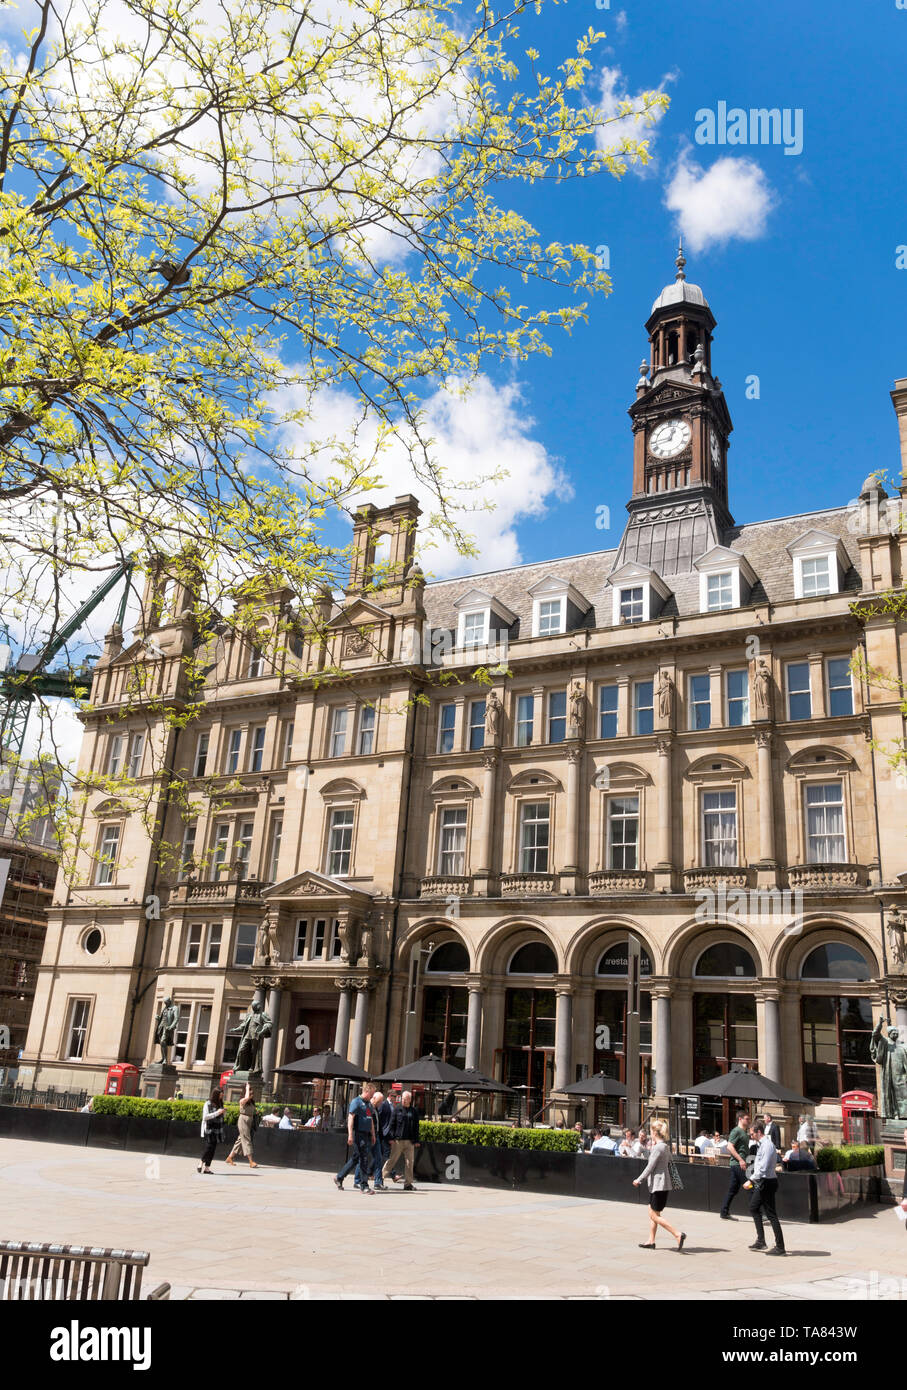 The former General Post Office building in City Square, Leeds city centre, Yorkshire, England, UK - Stock Image